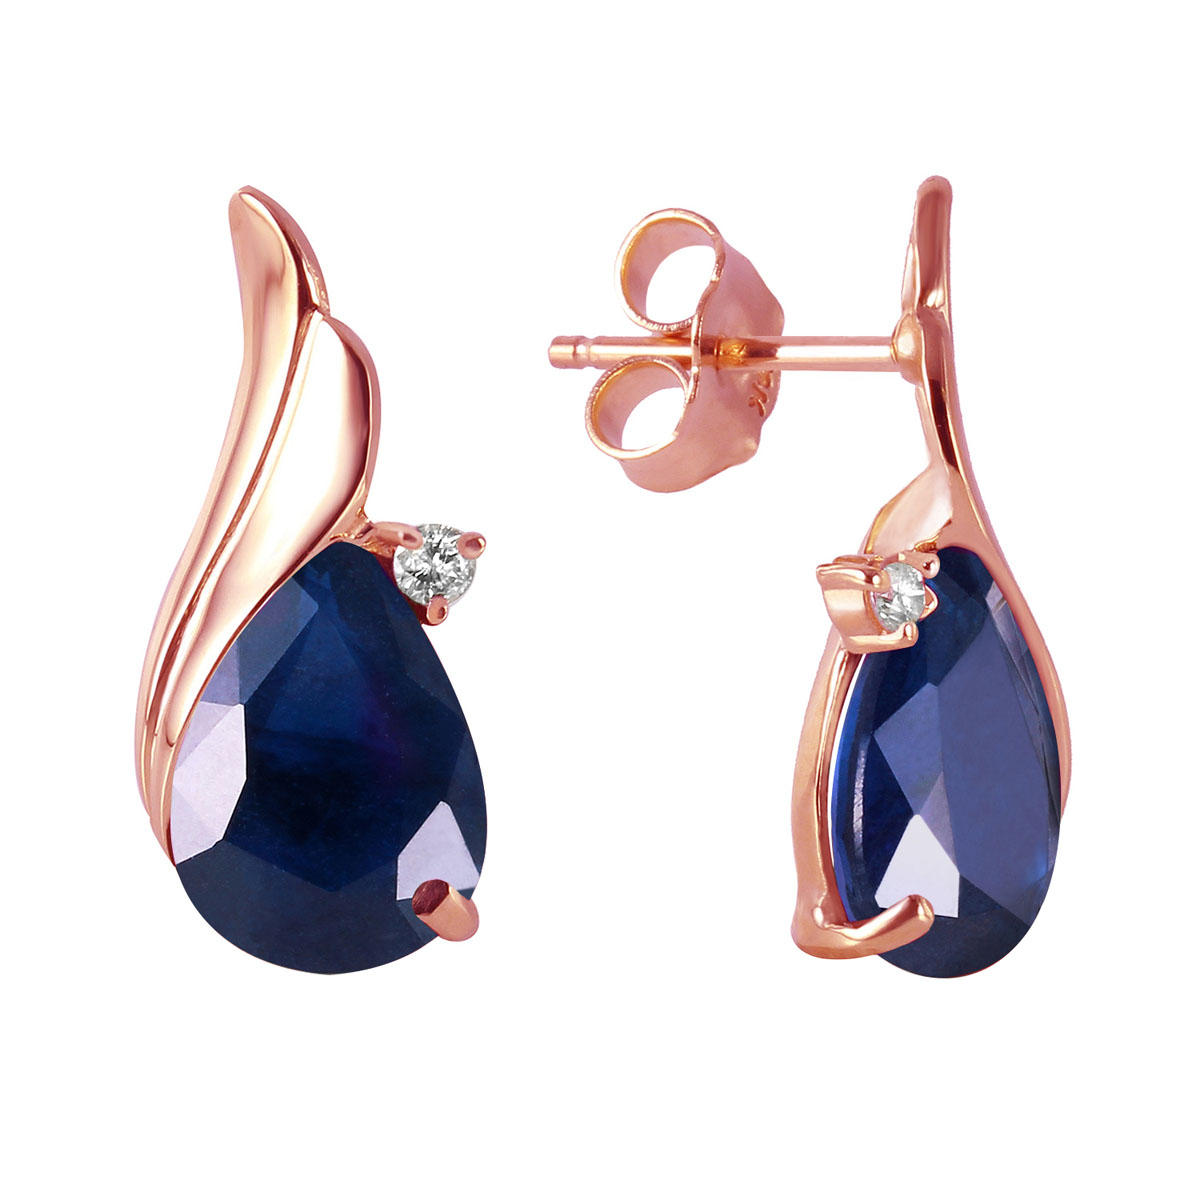 Sapphire & Diamond Stud Earrings in 9ct Rose Gold